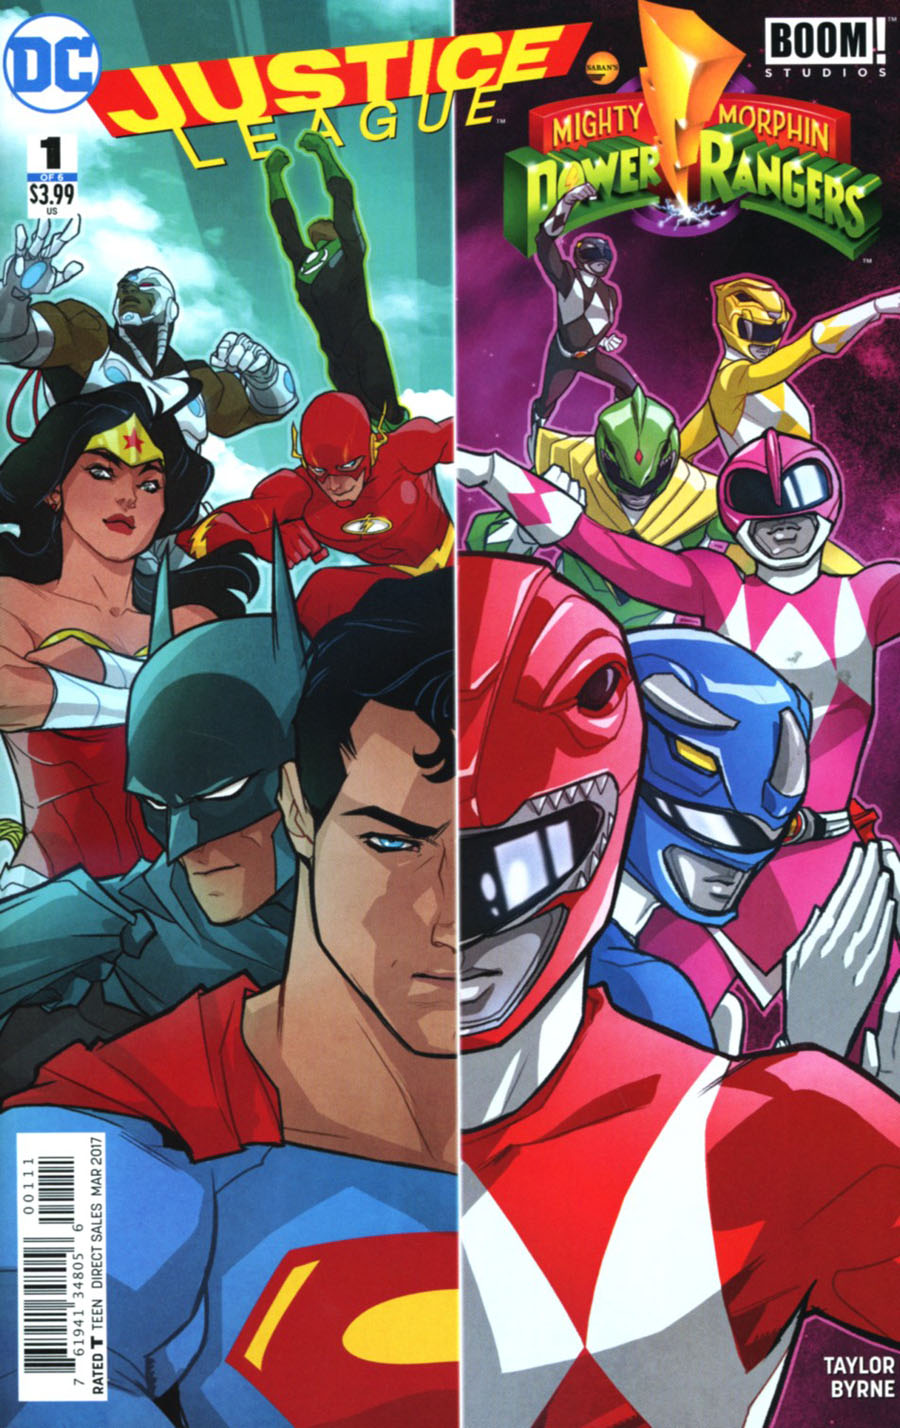 Justice League/Power Rangers #1